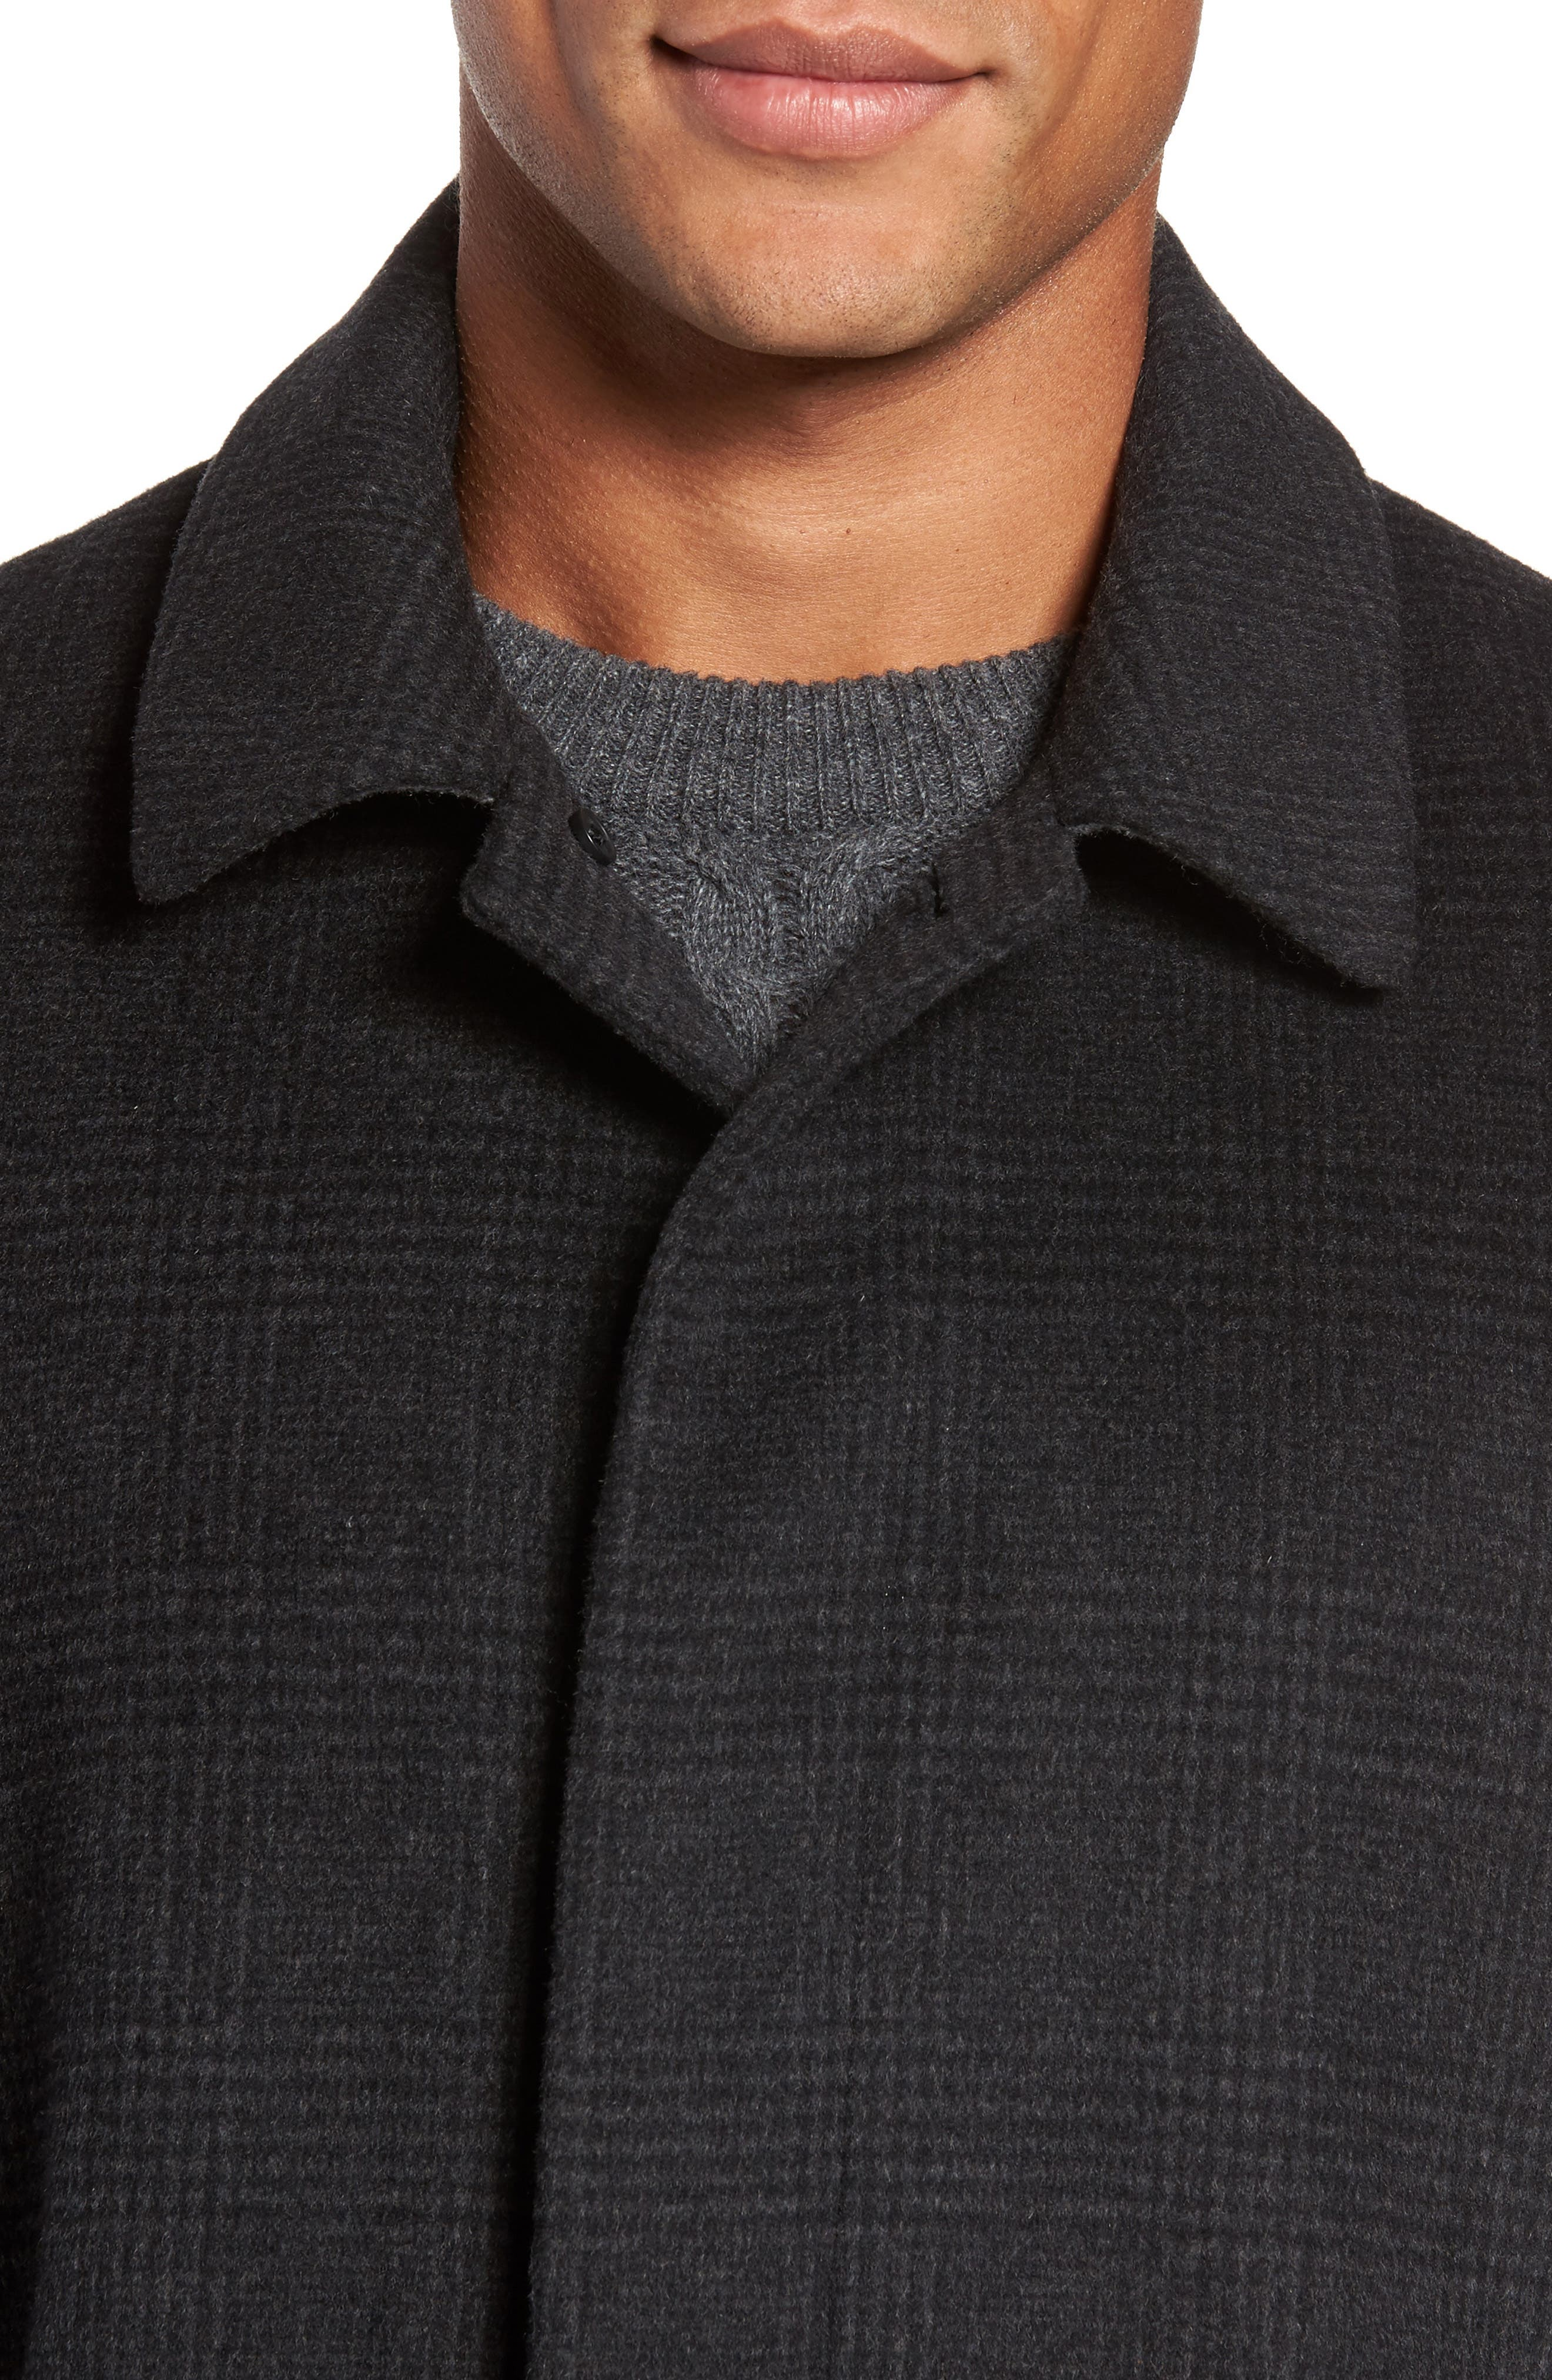 Turner Plaid Wool Blend Topcoat,                             Alternate thumbnail 4, color,                             011